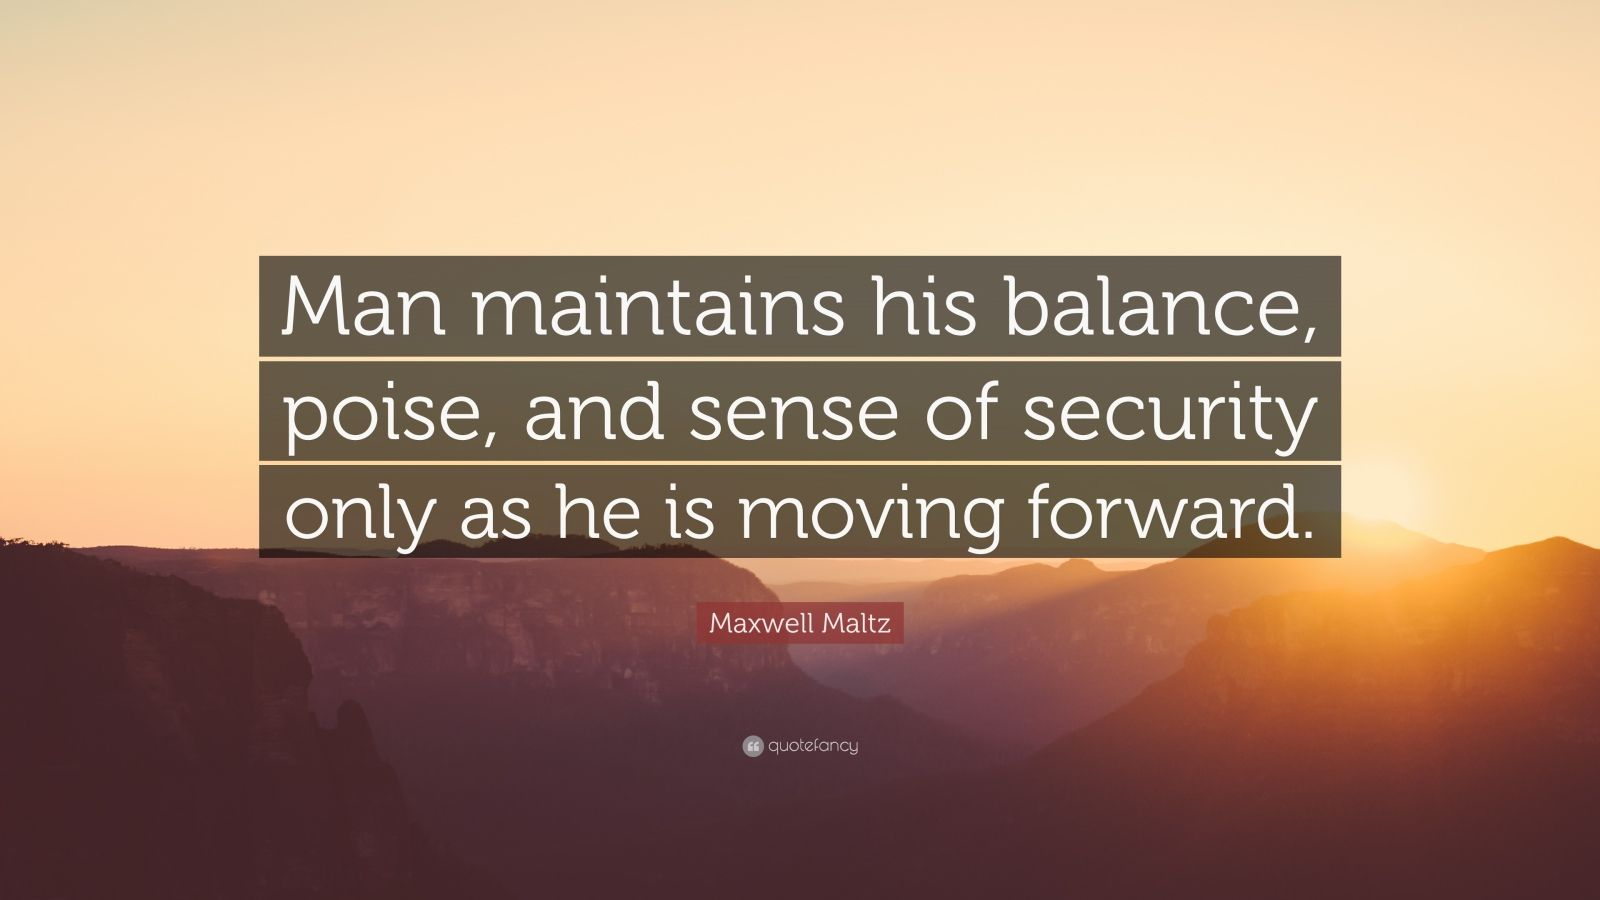 """Maxwell Maltz Quote: """"Man maintains his balance, poise, and sense of security only as he is moving forward."""""""